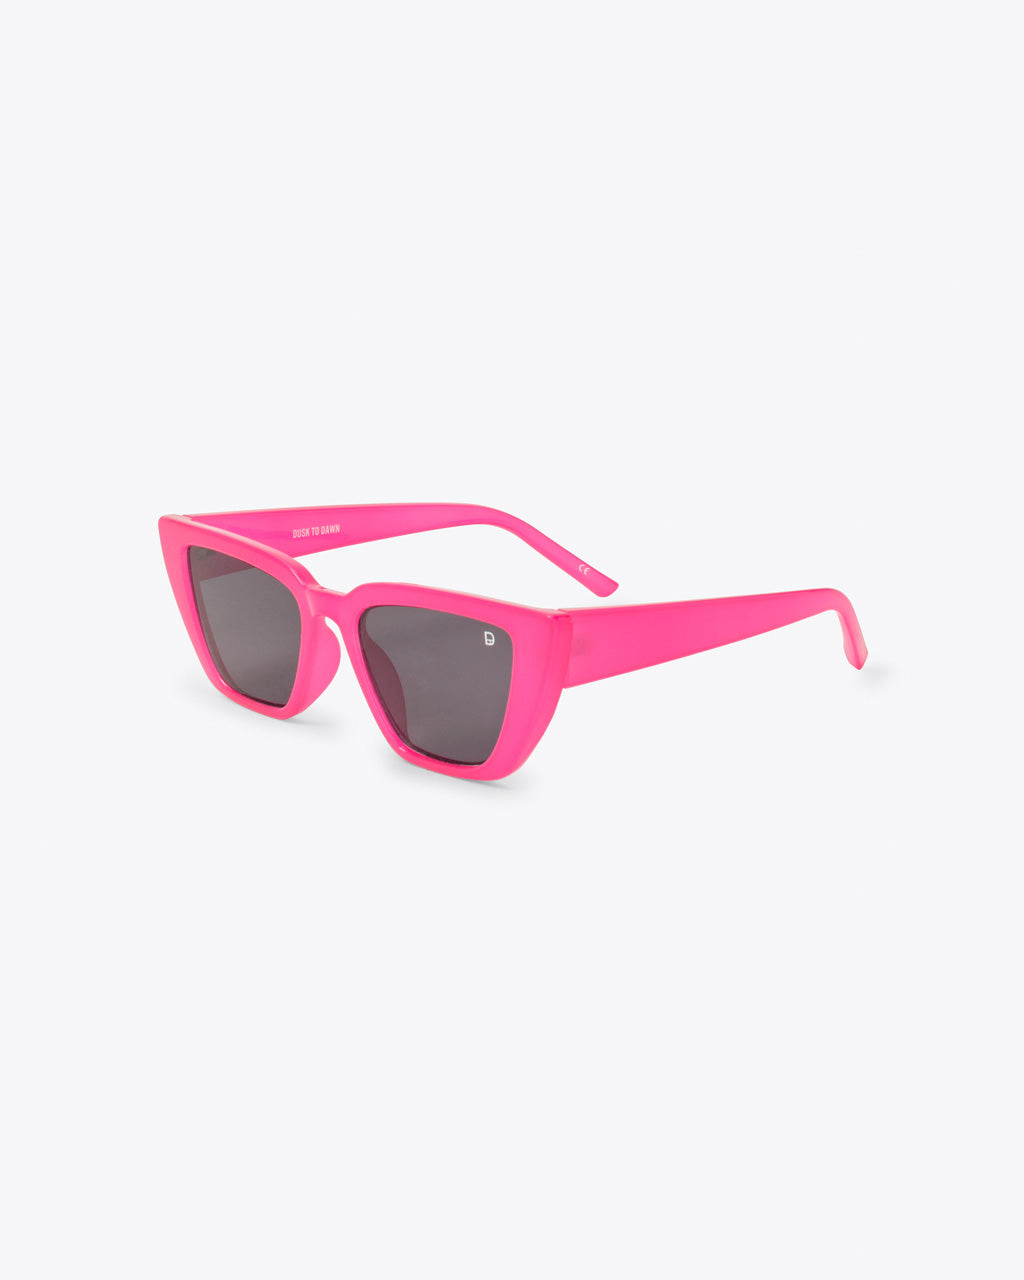 pink neon cat eye sunglasses with a black lens